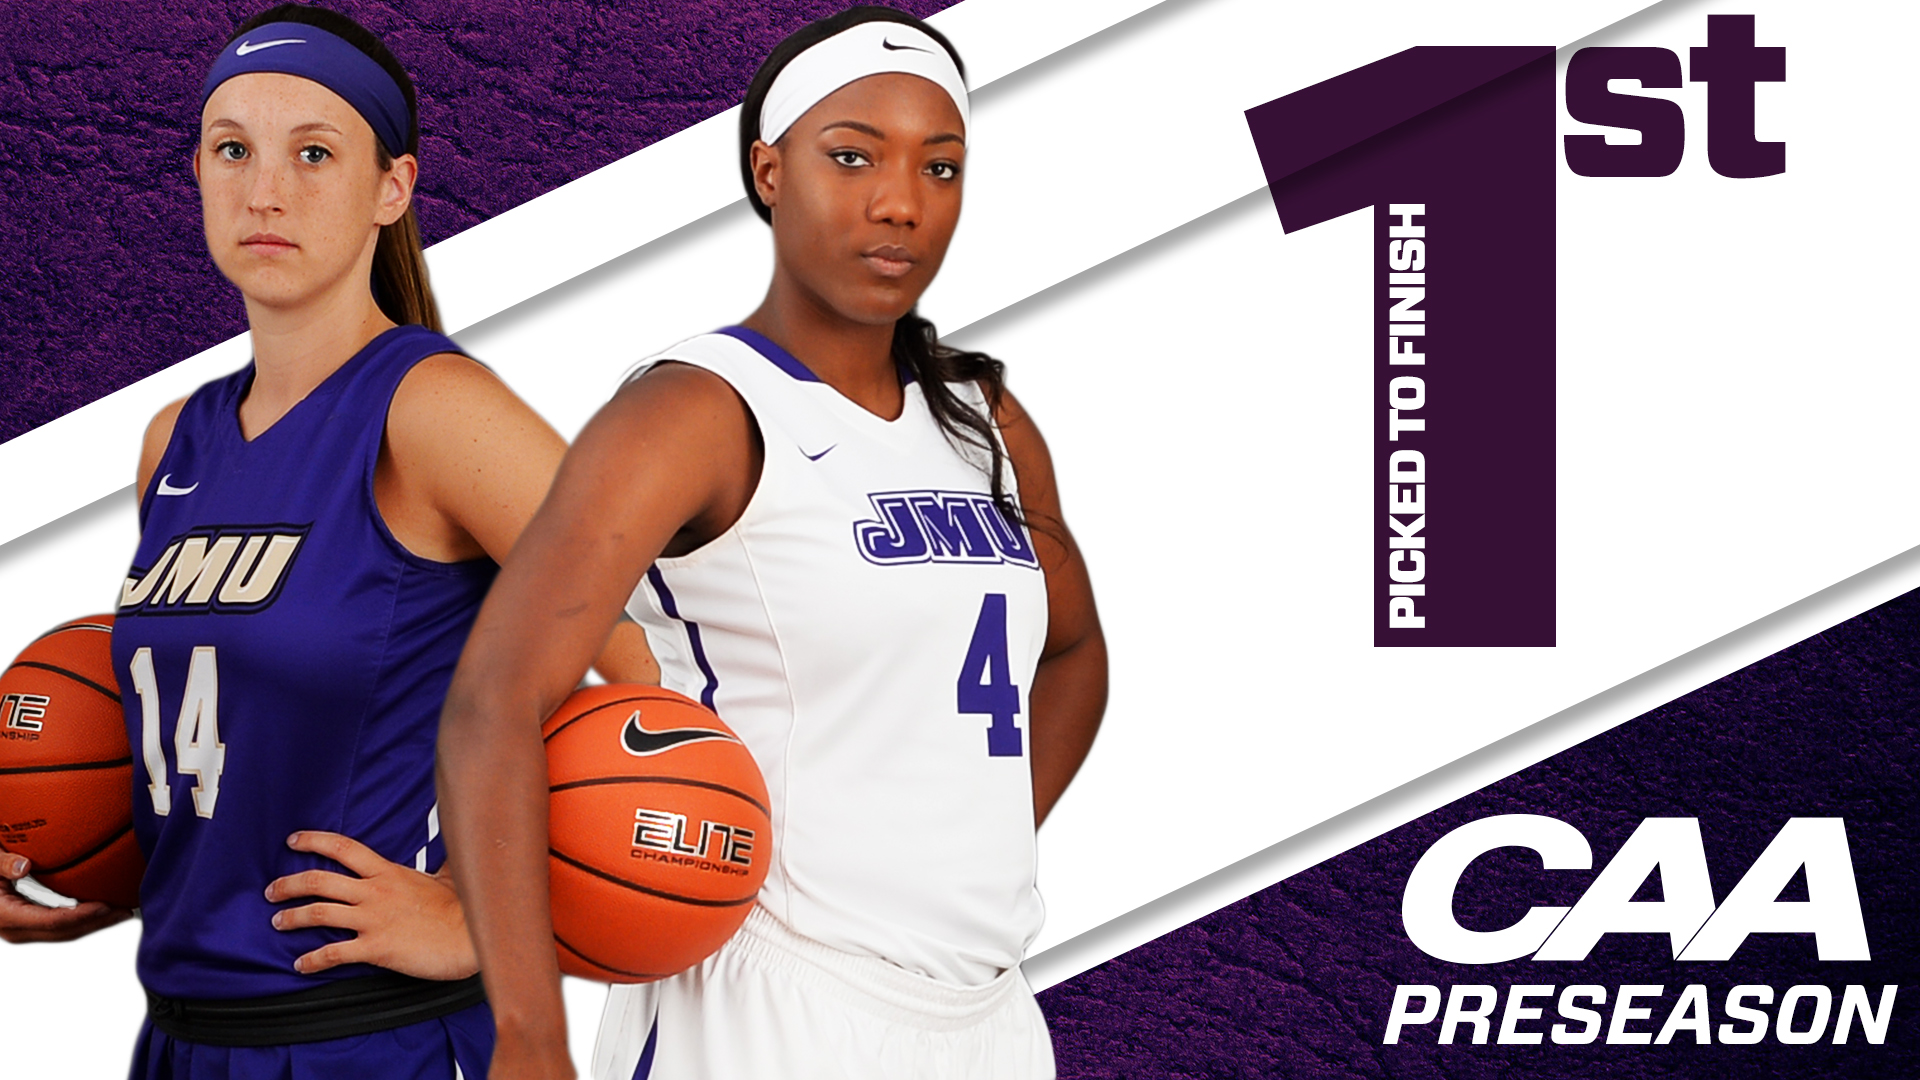 Women's Basketball: JMU Picked to Win CAA, Three Dukes Earn Preseason Honors)